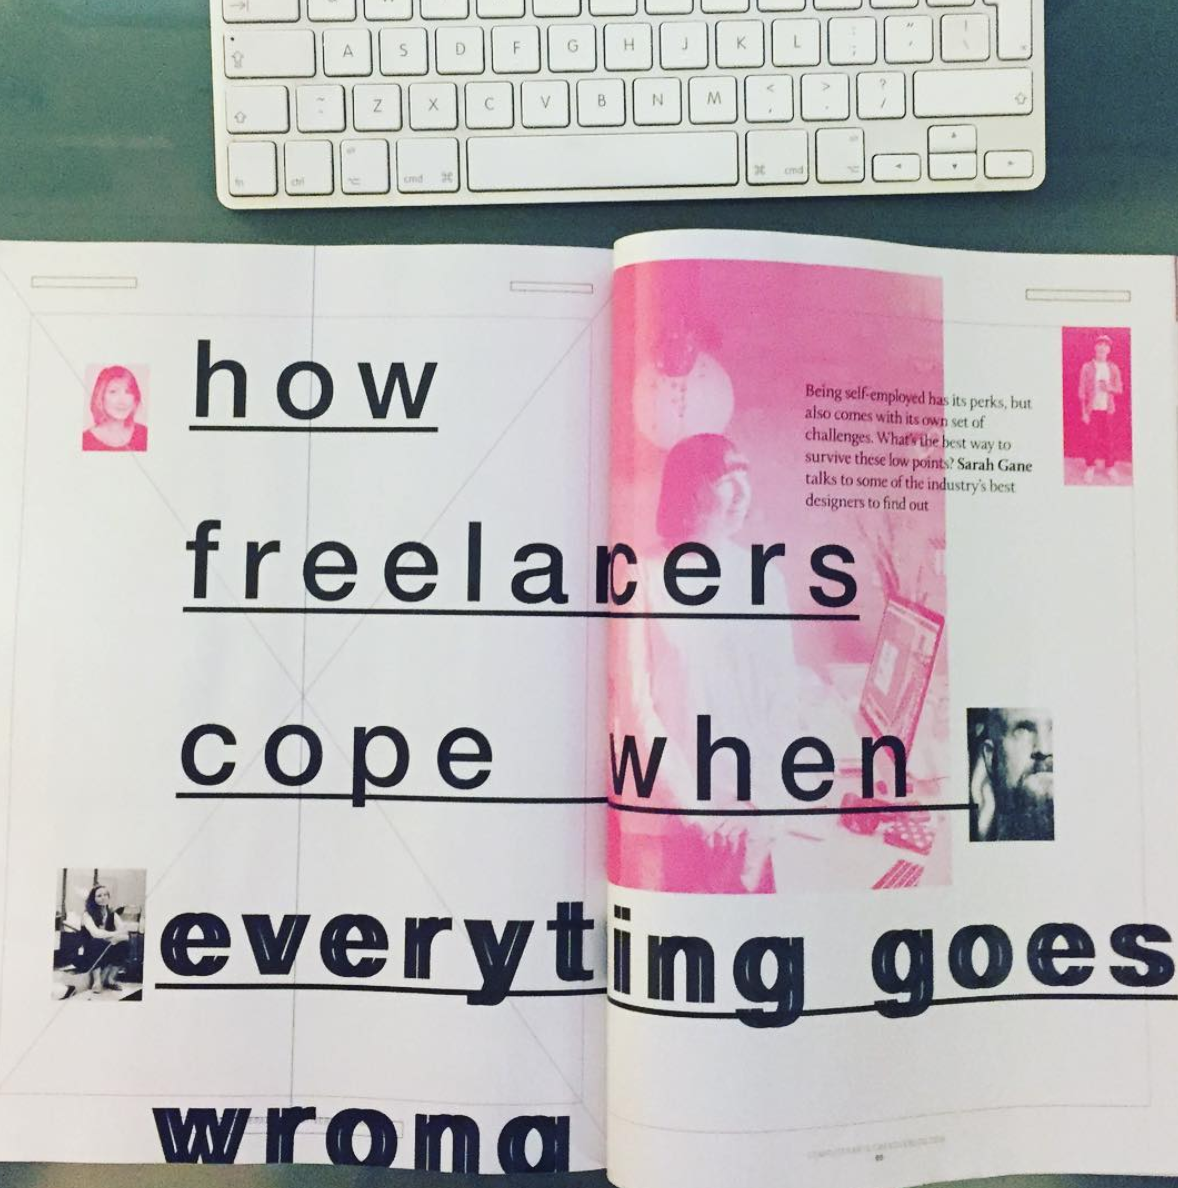 In-depth feature on freelancing in the creative industries: Computer Arts magazine issue 283, published August 2018. Featuring practical advice from some of the best graphic designers and illustrators working today: Barbara Dziadosz, Beci Orpin, Benny Gold, Francesca Tortora, Jessica Hische and Palehorse Design (Chris Parks).